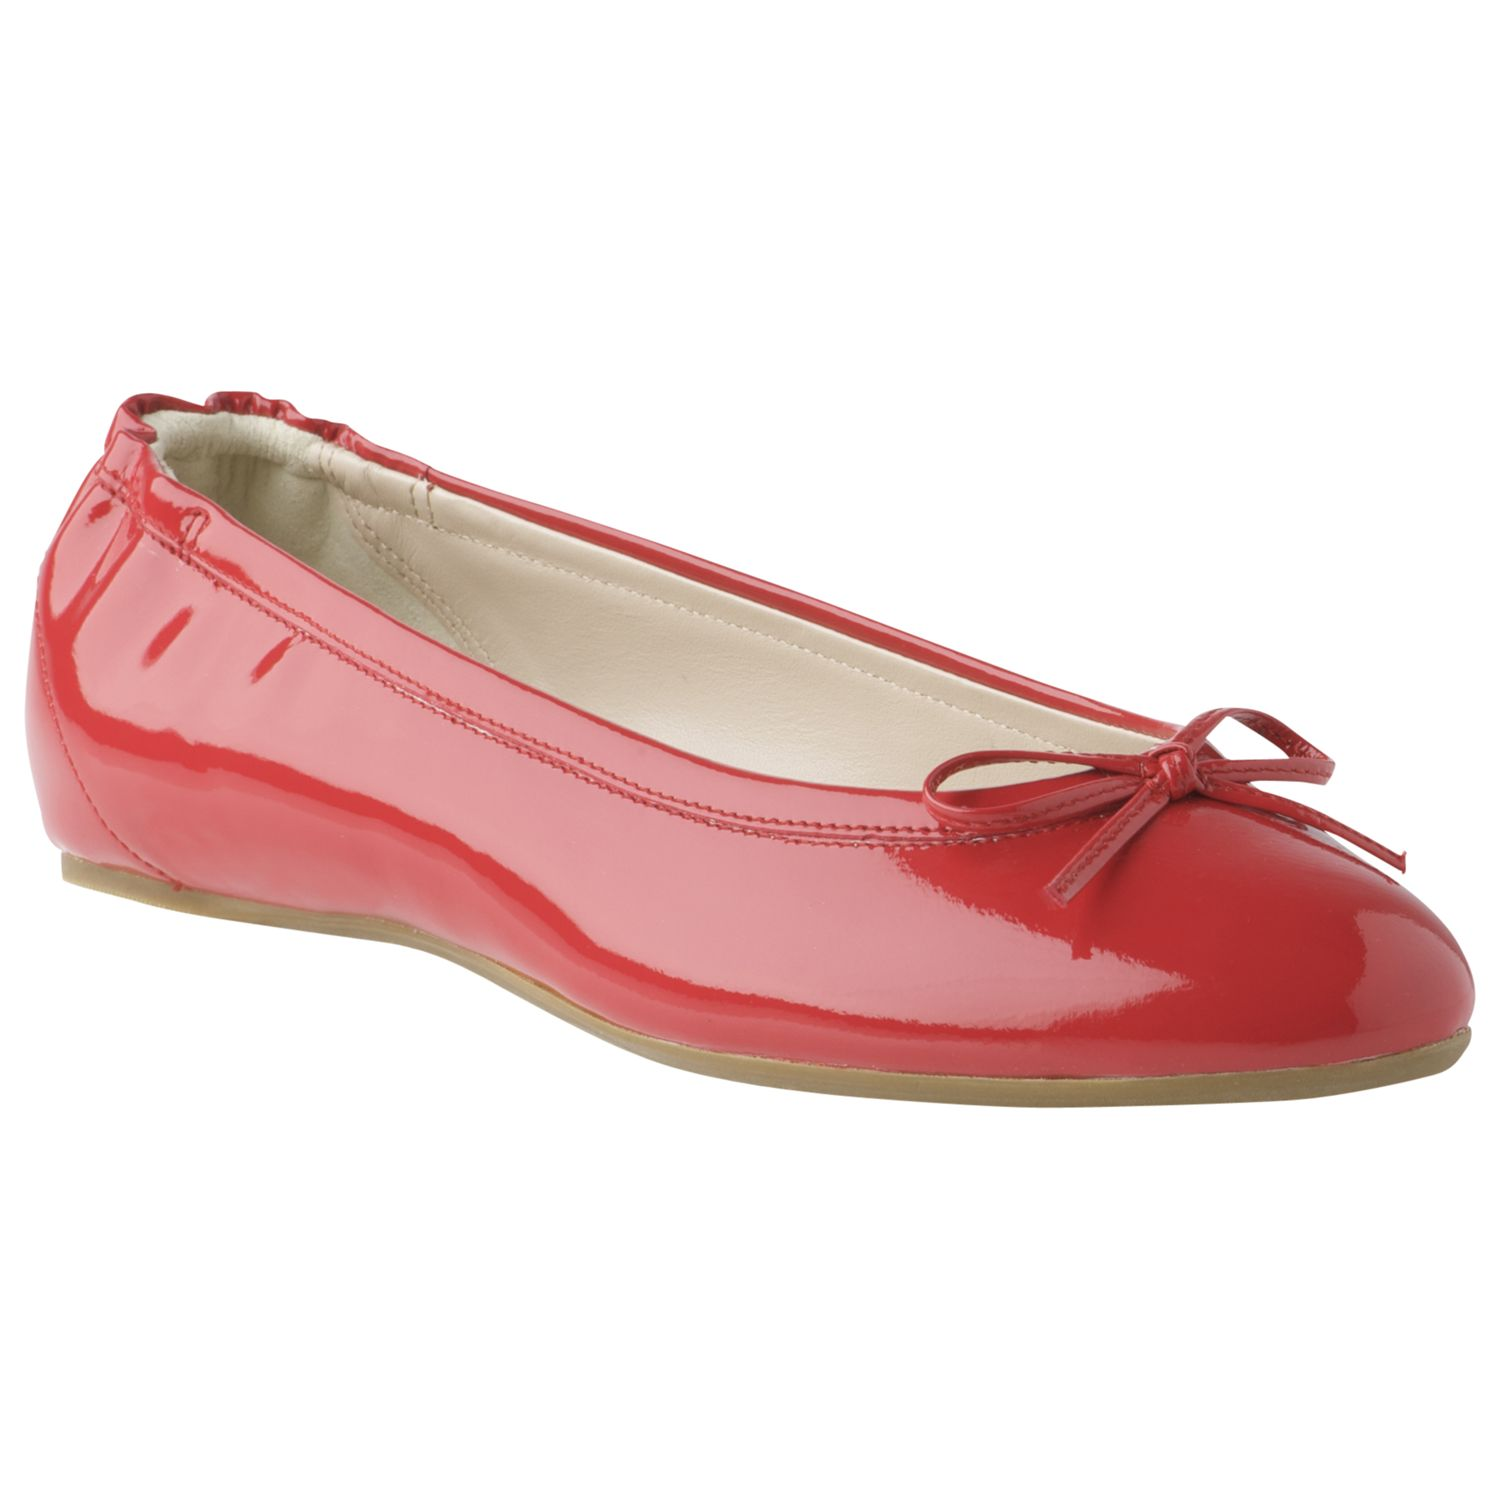 Suki Patent Leather in Hot Pink